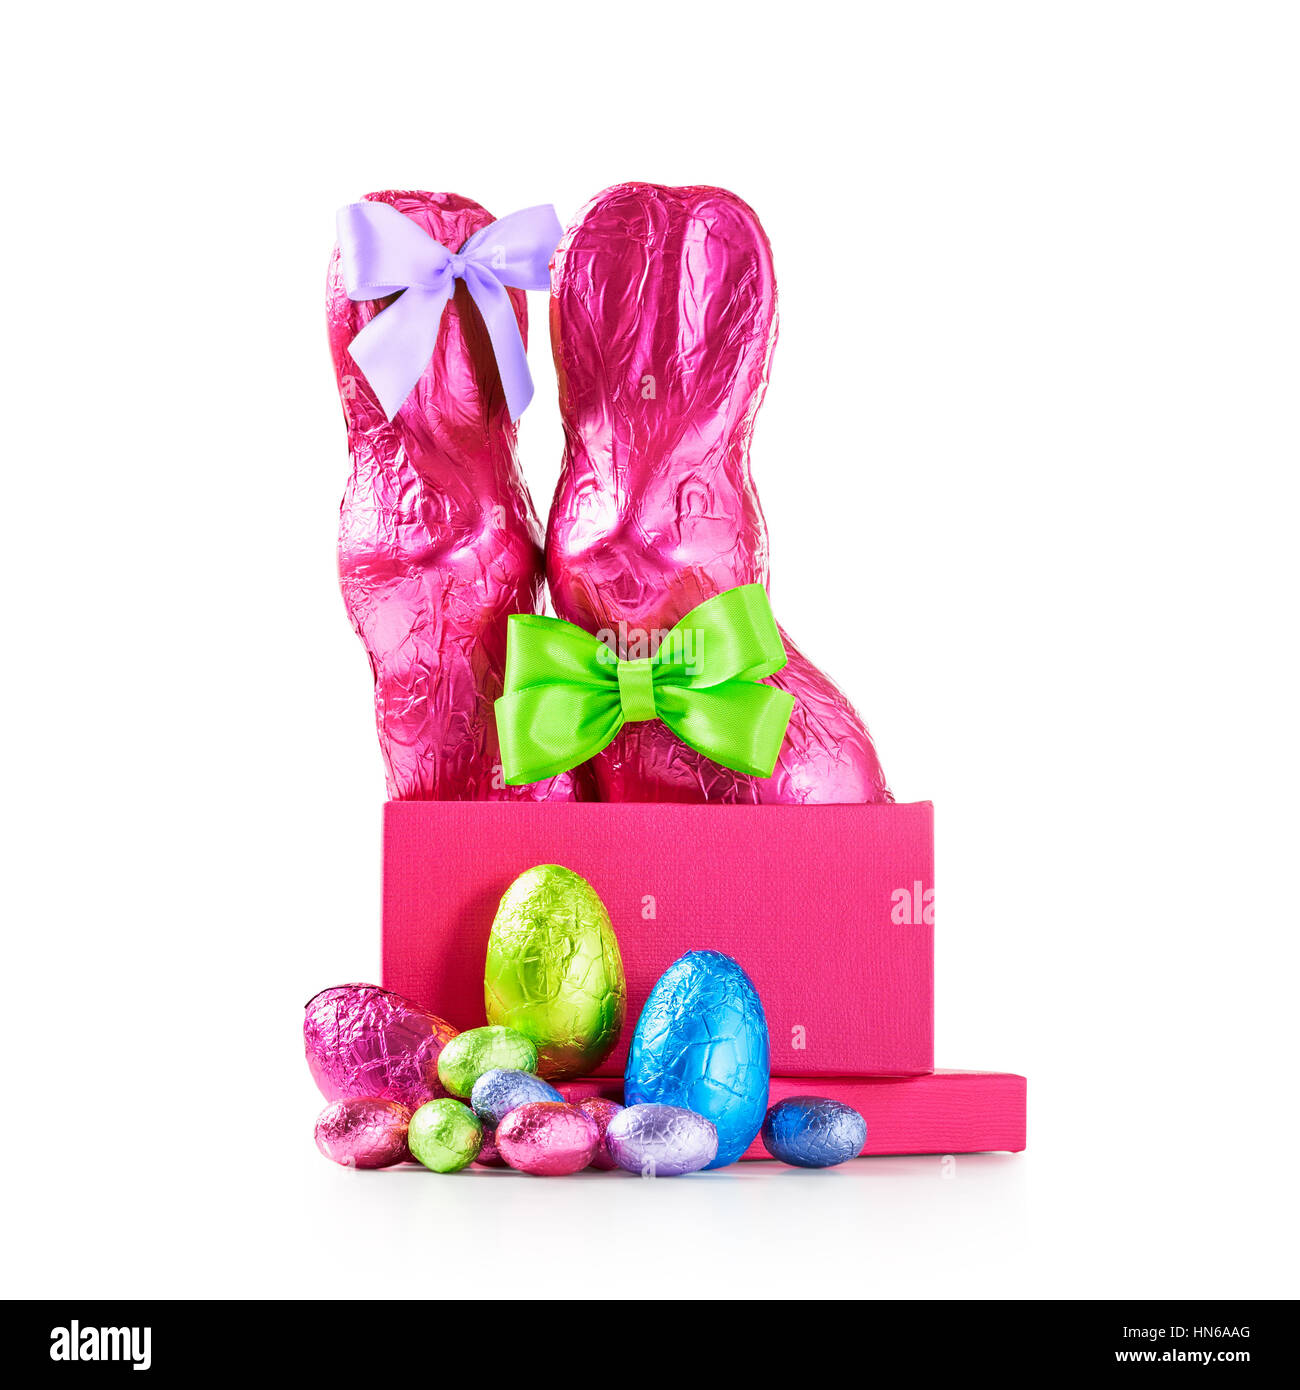 Gift box with chocolate easter eggs couple of rabbits with bow gift box with chocolate easter eggs couple of rabbits with bow wrapped in pink negle Image collections